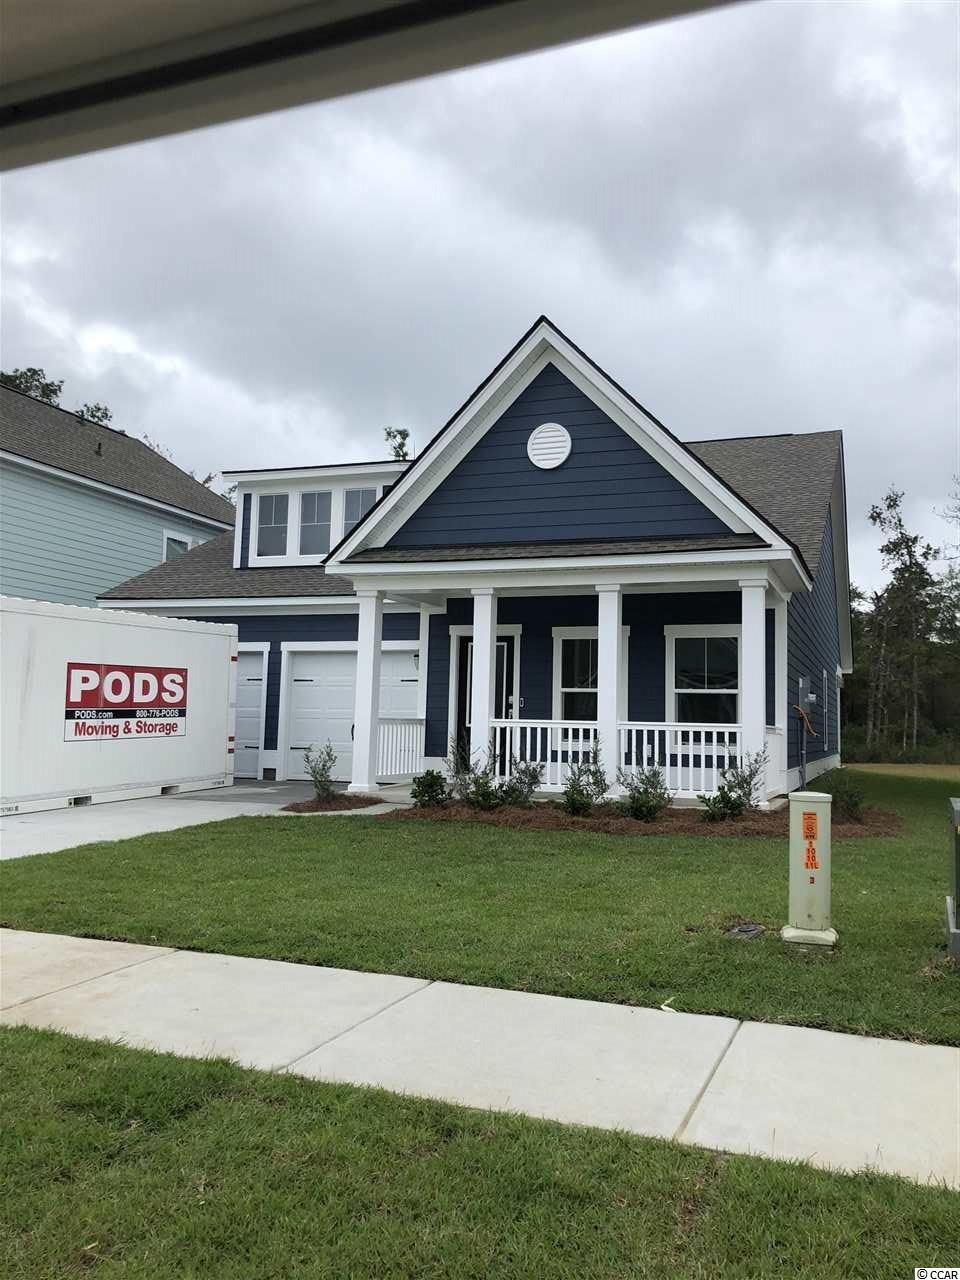 """Exciting Phase 3 and 4 homes underway! You cannot beat this location!  Just a five minute drive to the beaches. Close enough you can even walk or ride the golf cart. This Home is a DEAL. Get in Early for Preconstruction Prices. Call Gregg Weissman  for more information and get the New E-Flyer. Featured home is The Annandale Model with the bonus room. Lennar is Very Excited to celebrate the PHASE III and IV GRAND OPENING of this highly anticipated Market Common New Home Community. (Belle Harbor) Our Welcome Home Center is open at  Belle Harbor.  This home boasts southern charm. Check out our new floor plans. Come sit and relax on the big front porch and enjoy our resort style amenities!  Belle Harbor (A Coastal Lifestyle Community) is nestled in the pristine Community of Market Commons. It will feature 400 beautiful homesites backing up to woods and pond views. With a selection of homes ranging from 1772 to 2899 heated square feet, they're flexible enough to meet any family's needs. These homes will feature our """"Everything's Included"""" package which includes many upgrades such as HardiPlank® siding, granite countertops, tiled backsplash, Frigidaire stainless steel kitchen appliances and upgraded cabinets in the kitchen. Tile flooring in baths / laundry room and a tankless water heater (Rinnai). Also includes a gas range, 2 car garage and a covered lanai for outdoor living enjoyment. There is so much to discover in this diverse and intriguing area. (1.5 miles to the beach). Short Golf Cart ride to shopping, restaurants, and the beach.  We invite you to surround yourself with natural beauty and find how living the Belle Harbor lifestyle may be perfect for you..**Photos are of similar home in another community. Buyer responsible for verification of all measurements."""